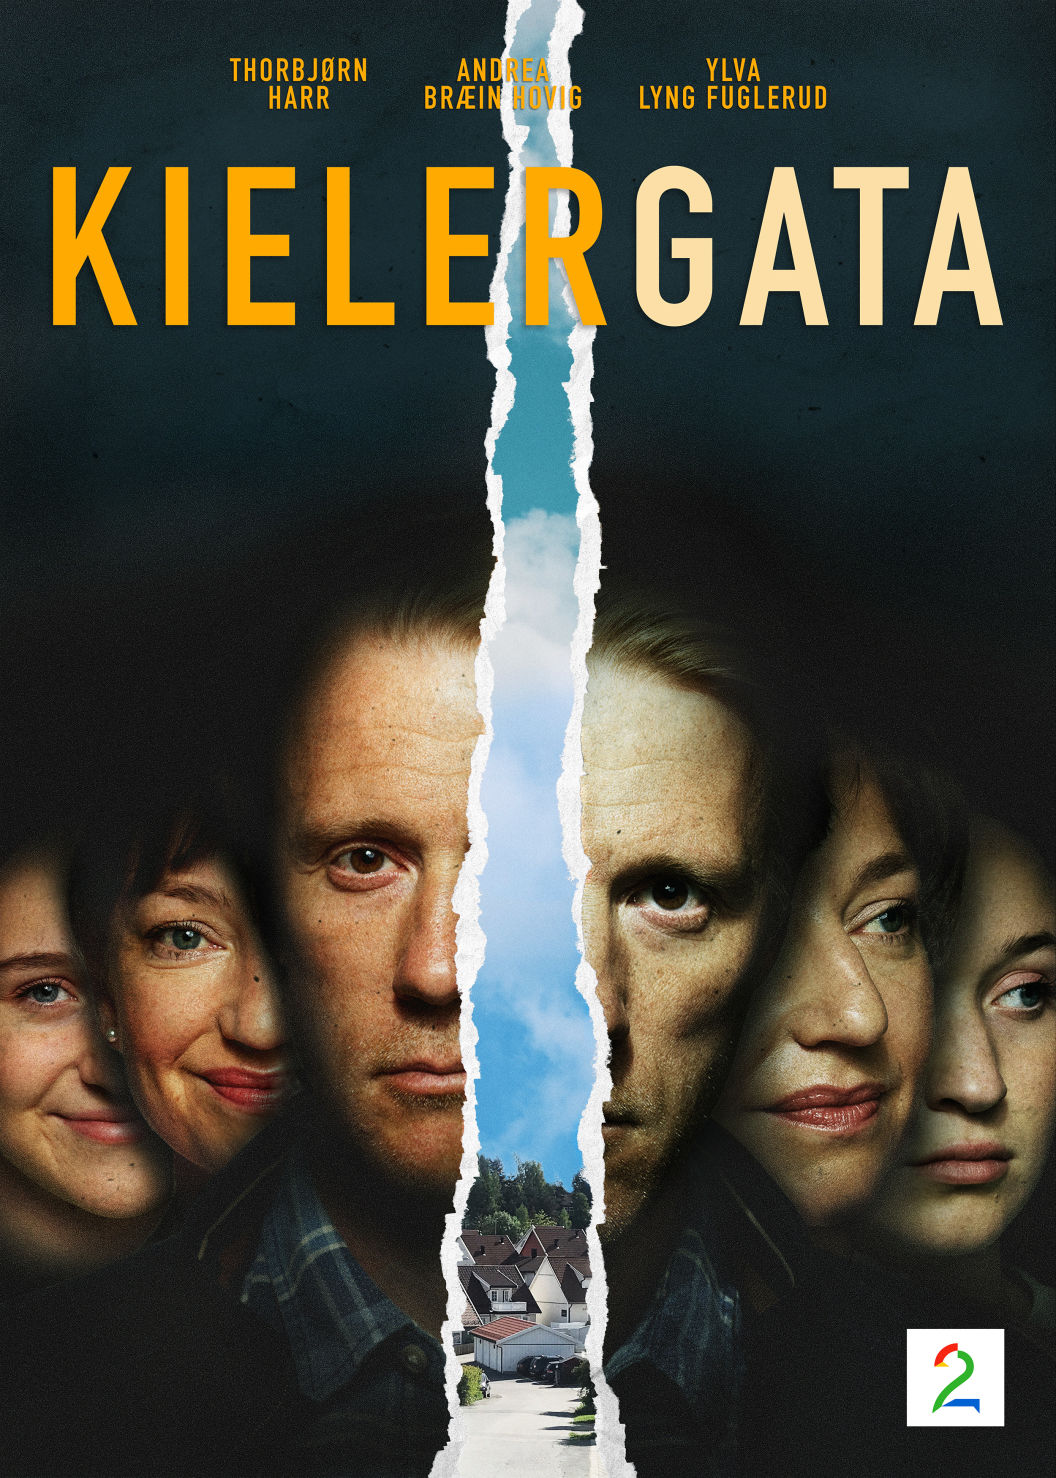 TV2 -- Kielergata